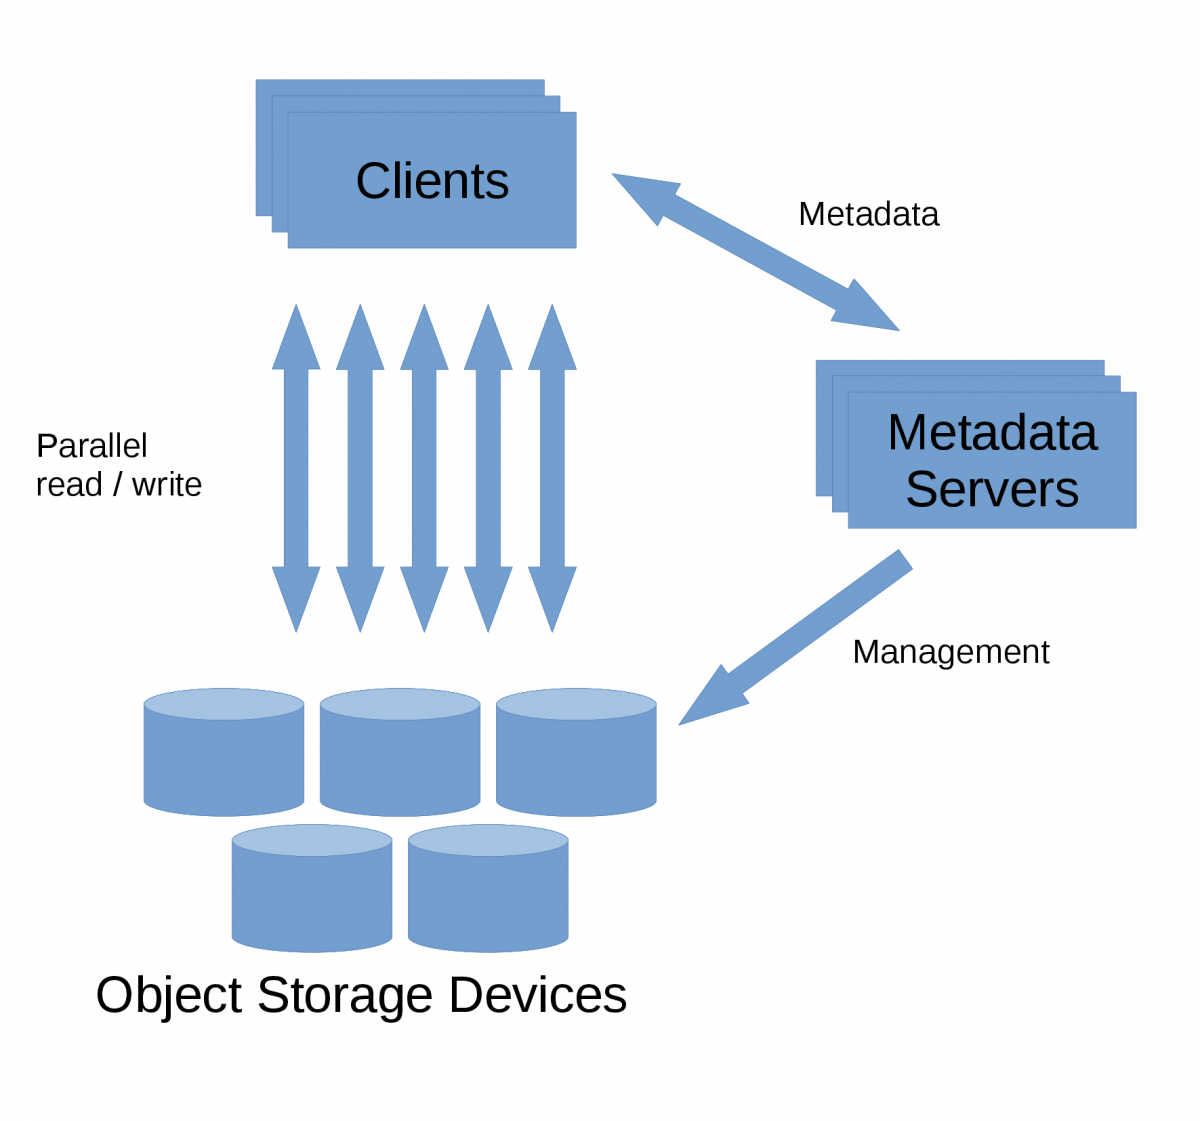 Object-based file system architecture with Object Storage Devices,   Metadata Servers and Clients.